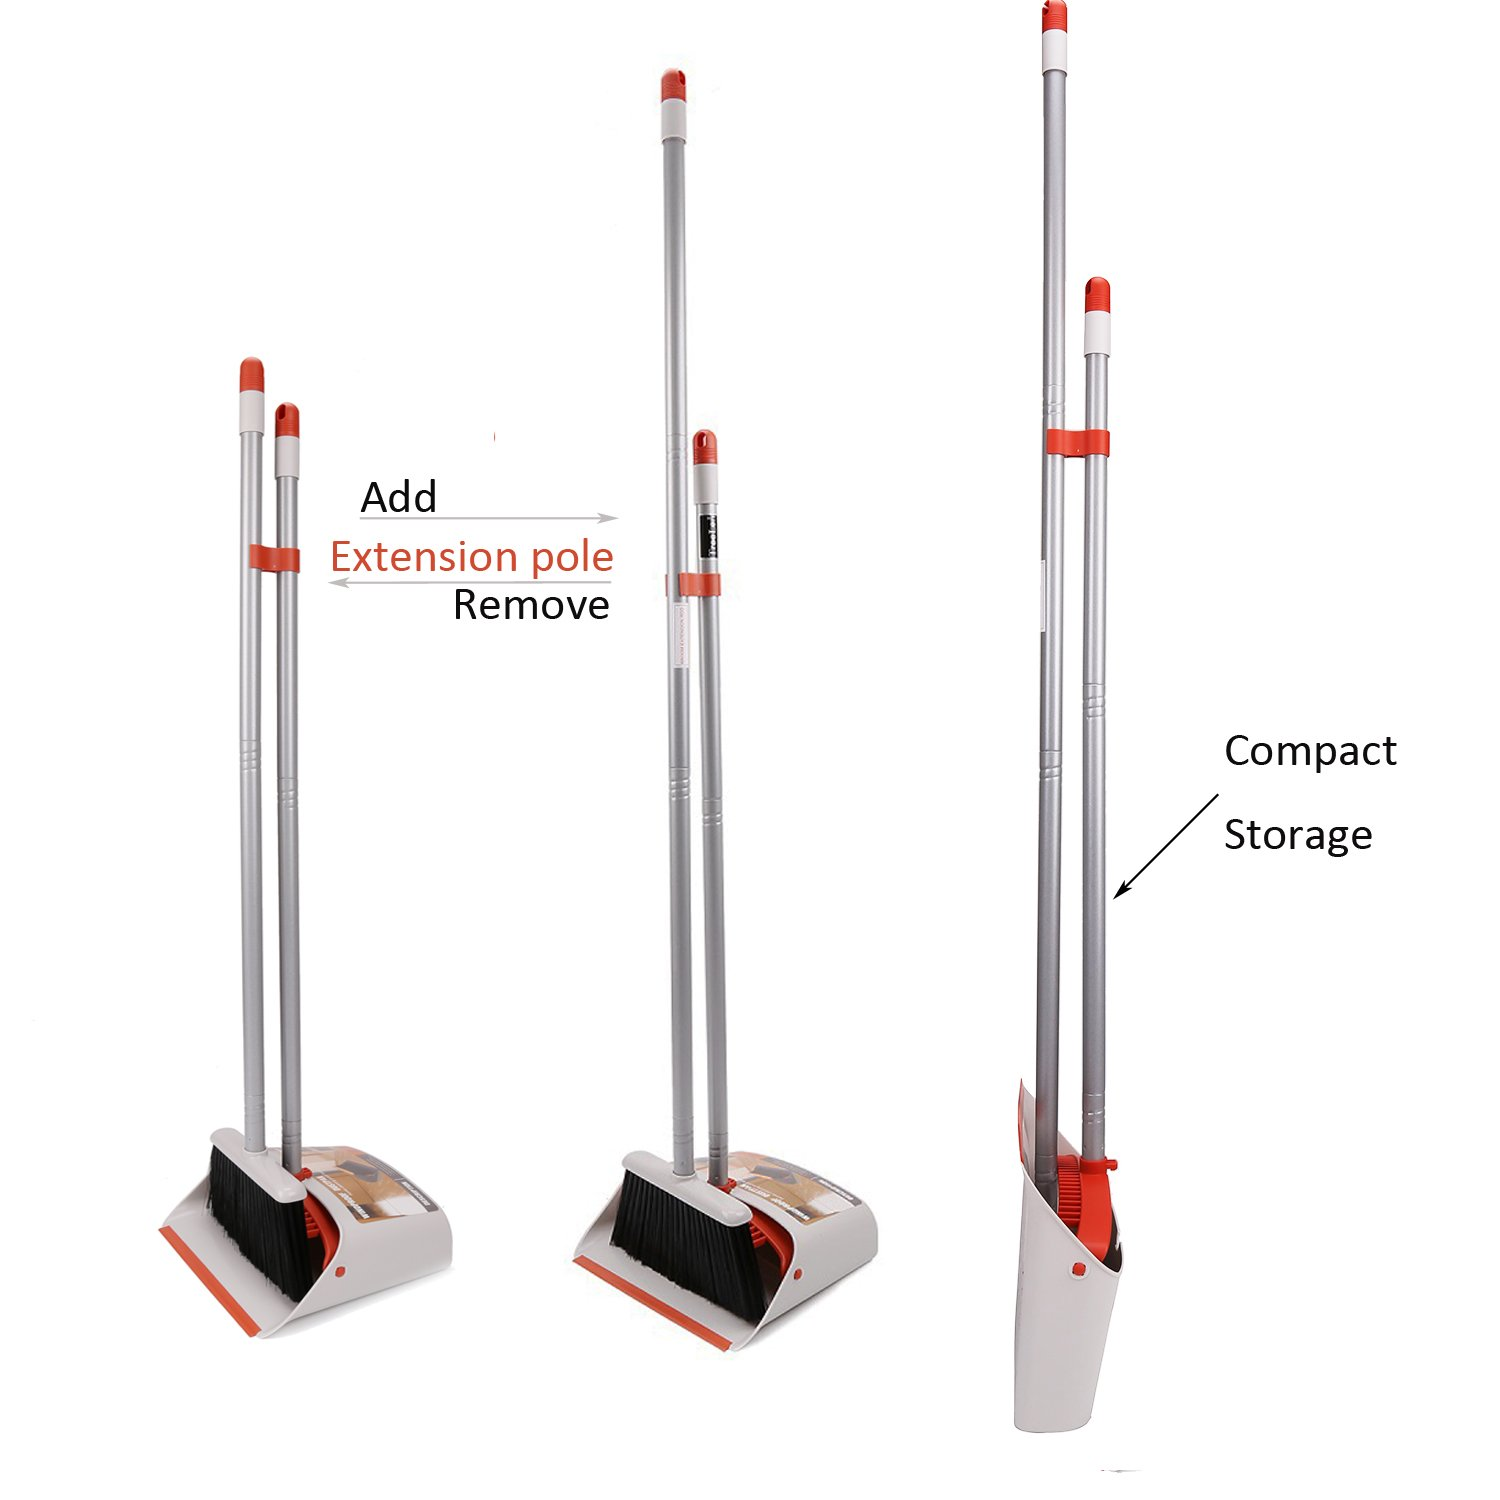 TreeLen Dust Pan and Broom//Dustpan Cleans Broom Combo with 40//54 Long Handle for Home Kitchen Room Office Lobby Floor Use Upright Stand up Dustpan Broom Set